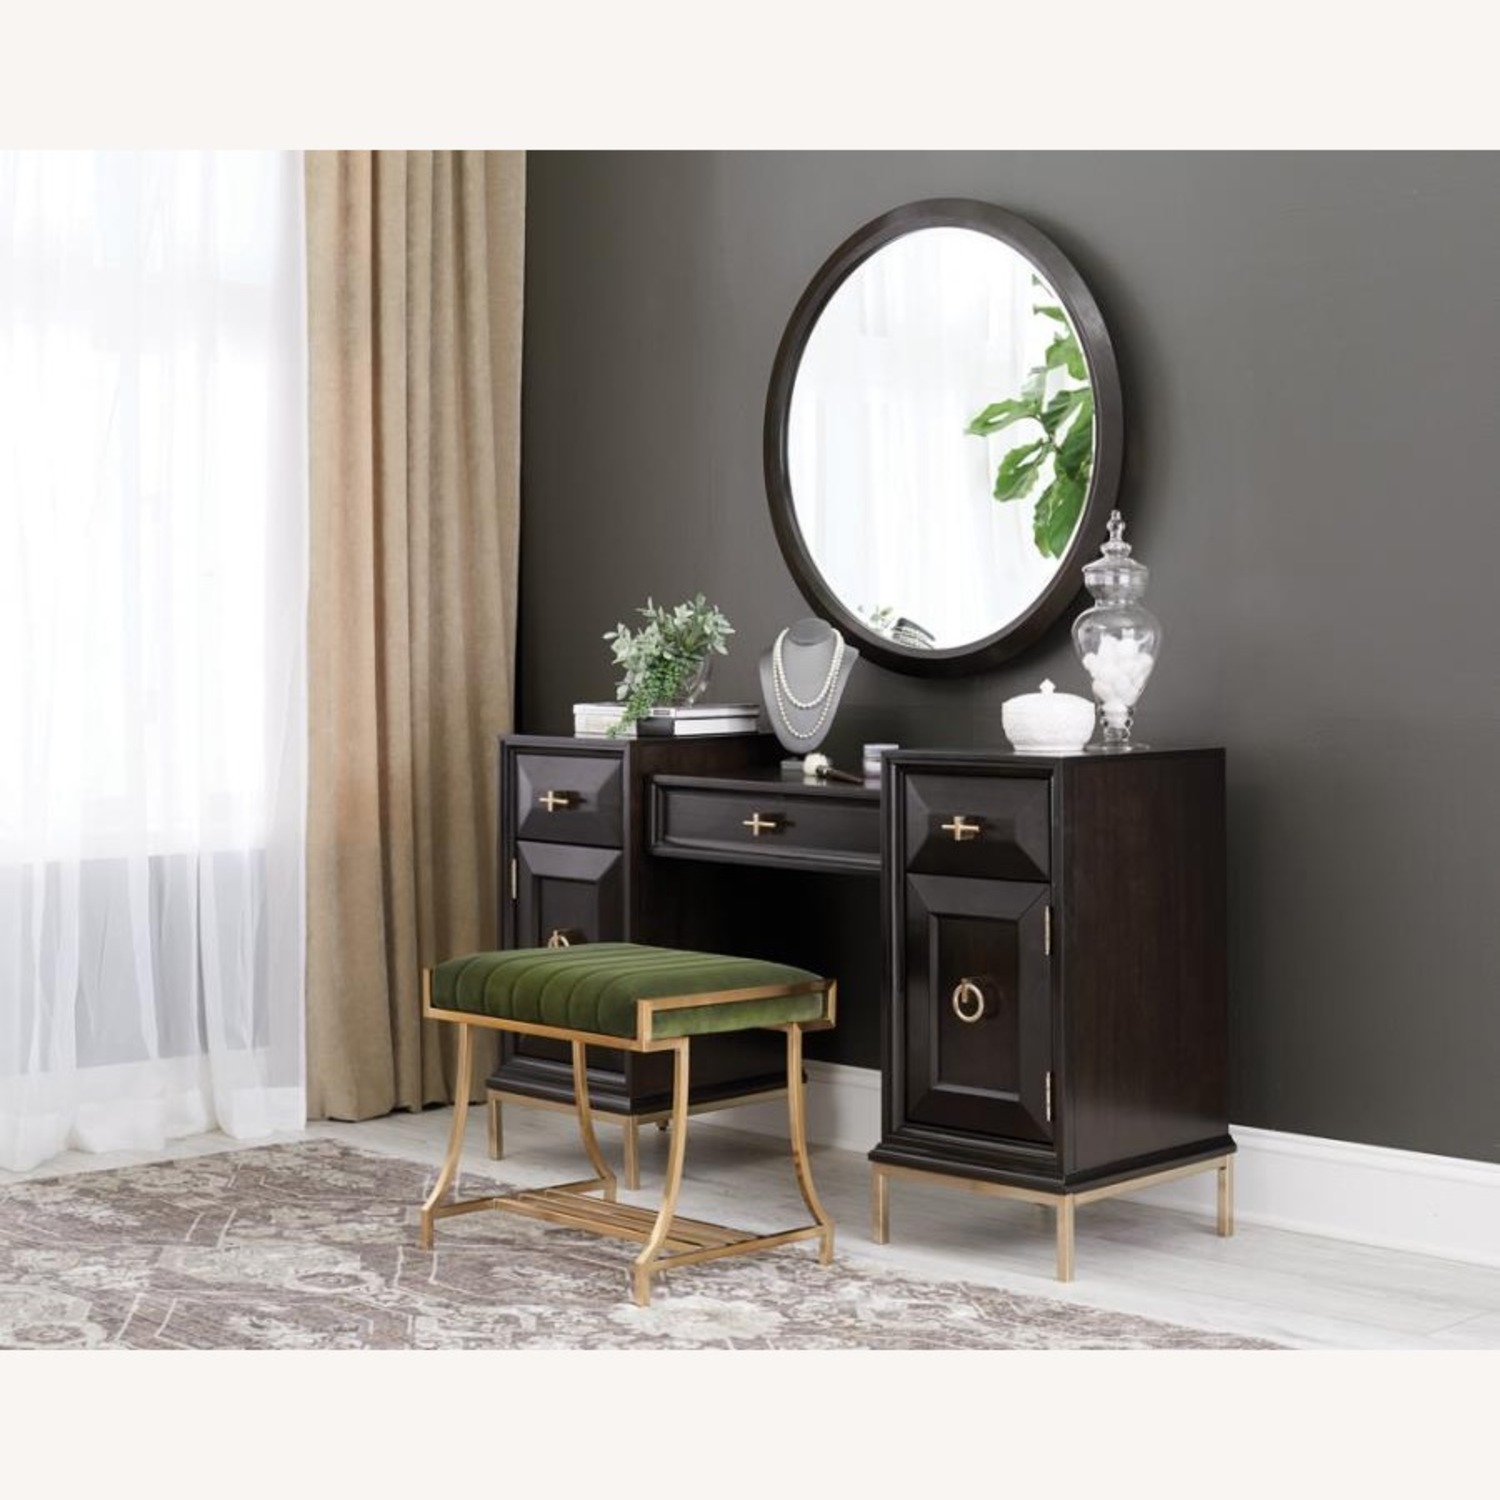 Elegant Vanity Stool In Taupe Color Fabric - image-2